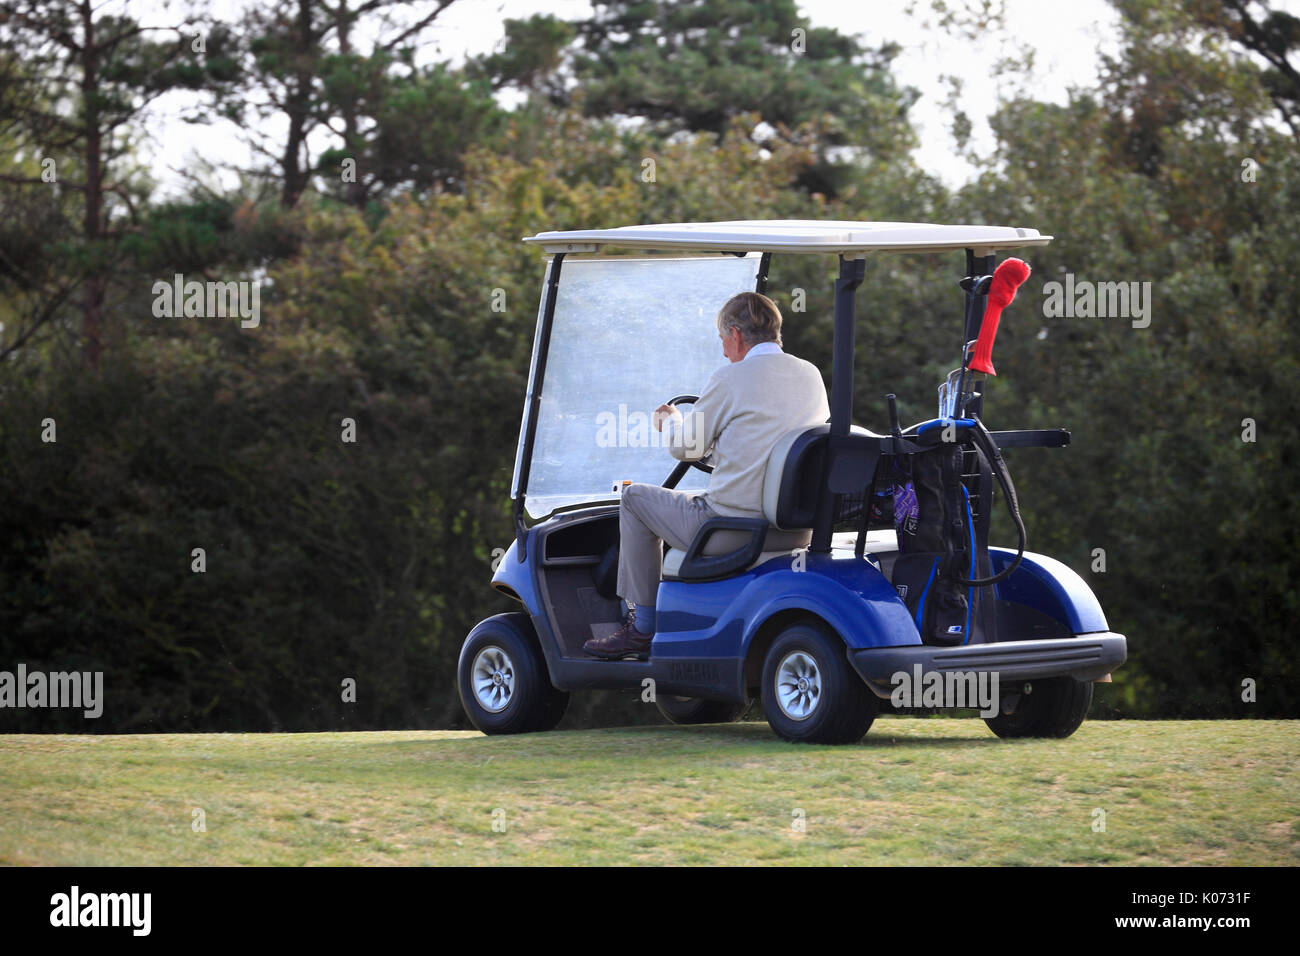 Senior golfer in a golf buggy on the course. - Stock Image